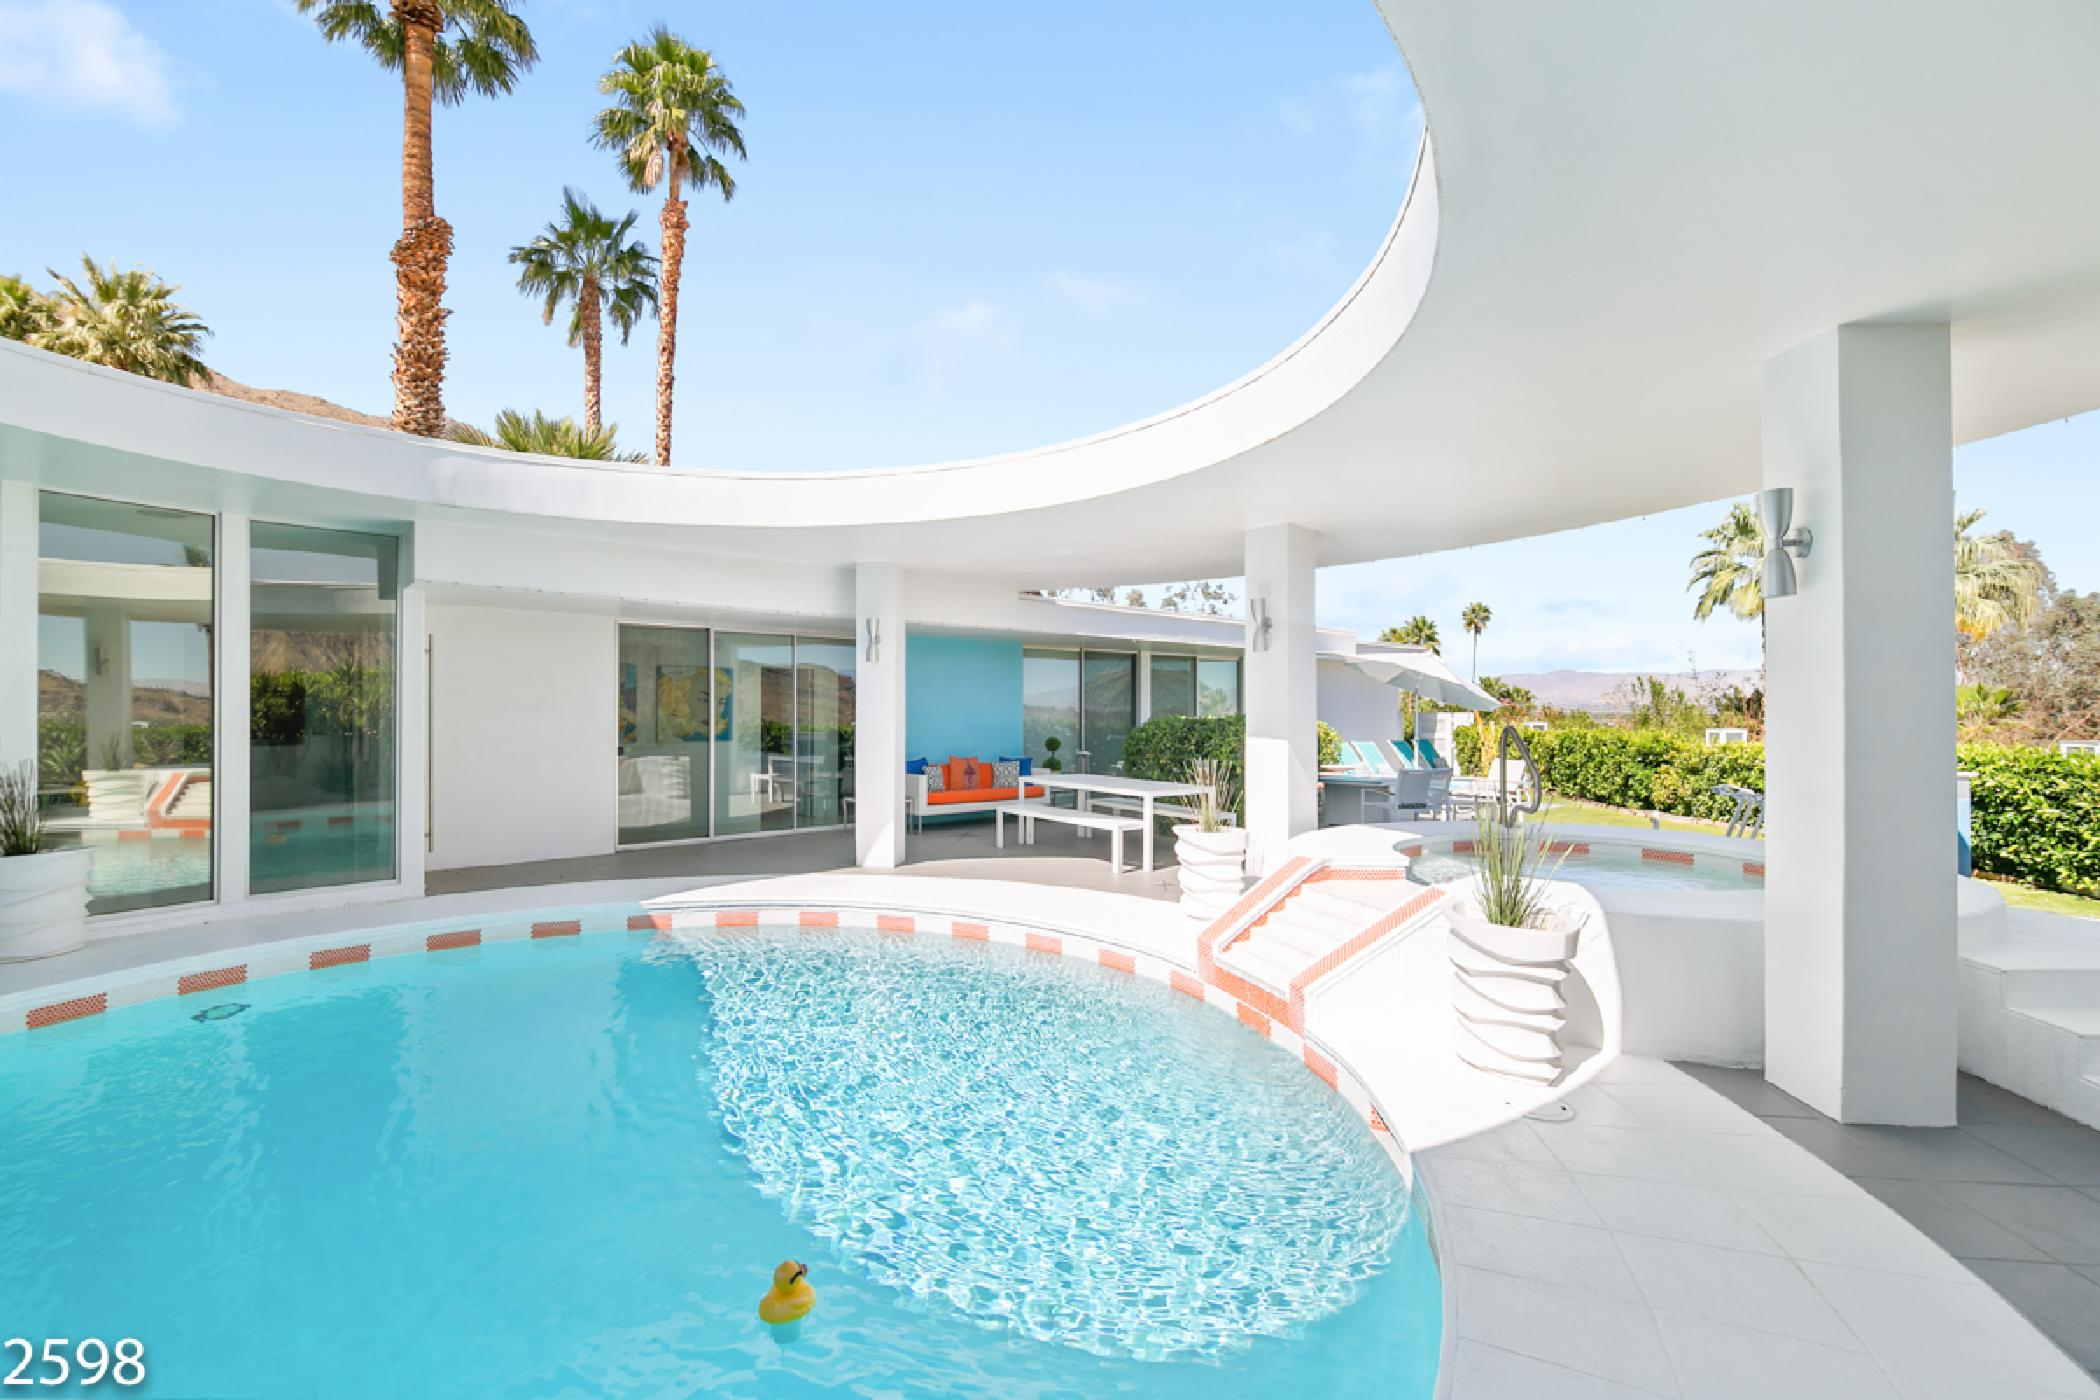 One of a kind Modern Home with Circular Pool and Spectacular Views